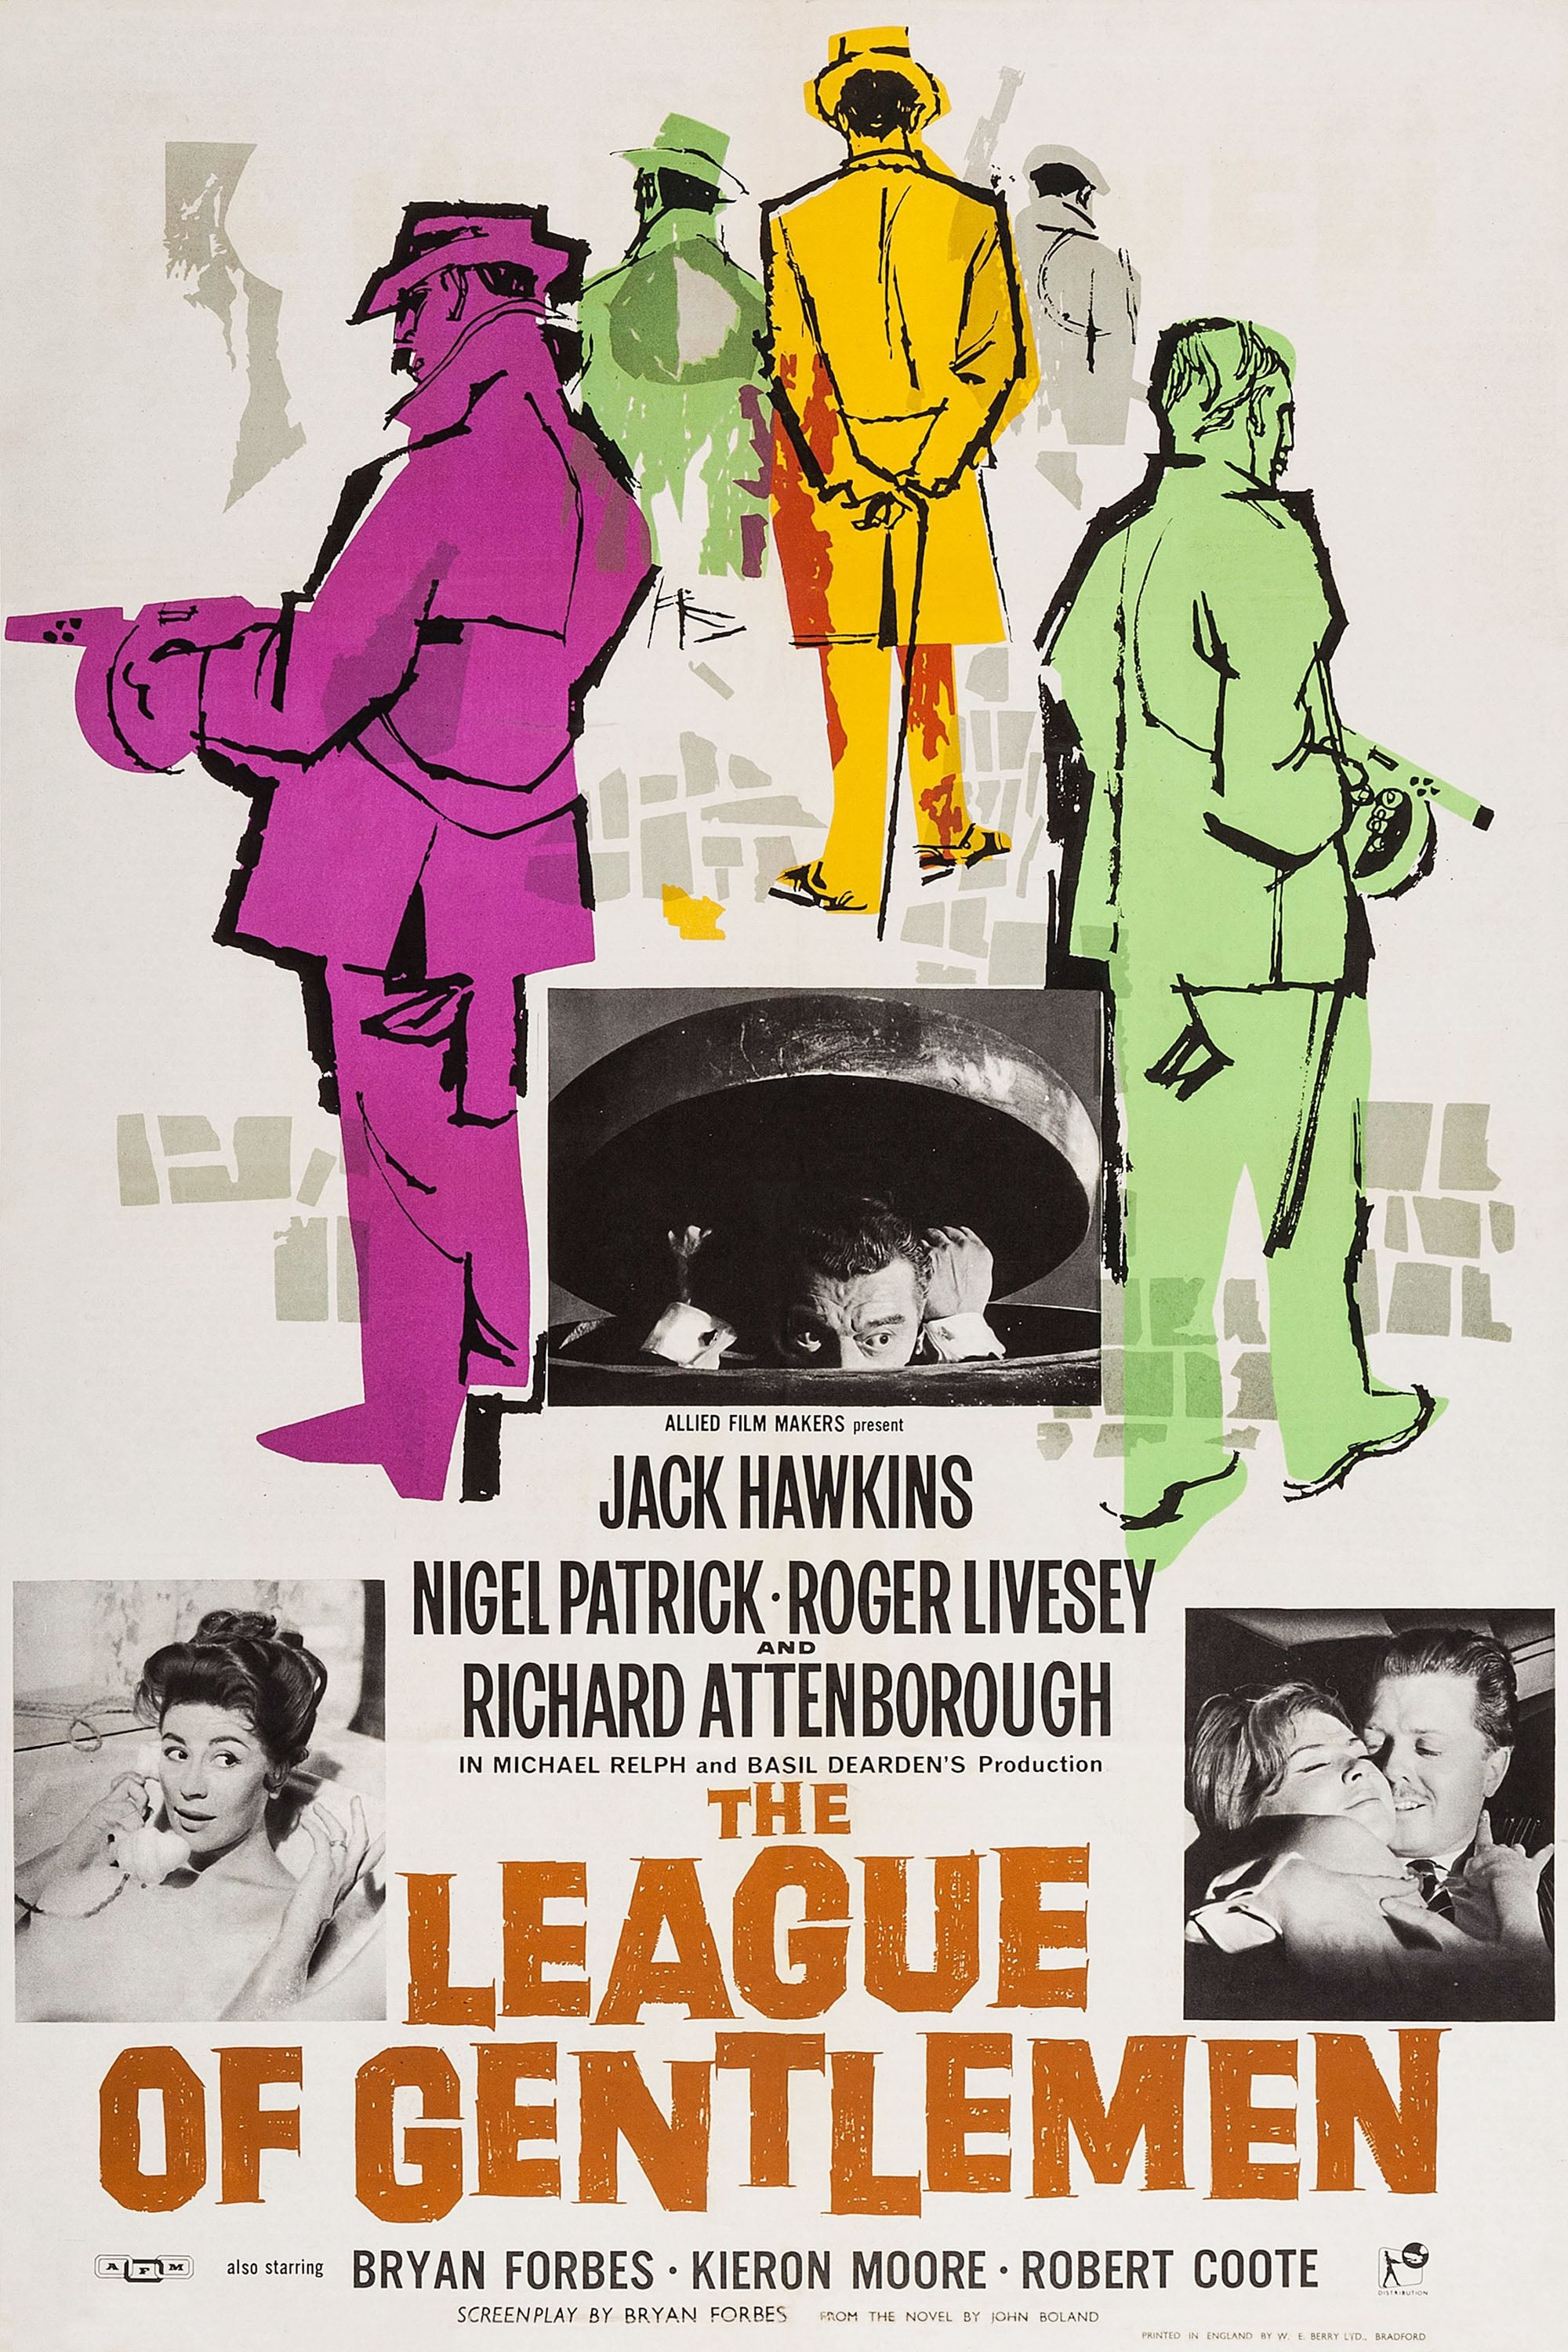 The League of Gentlemen (1960)